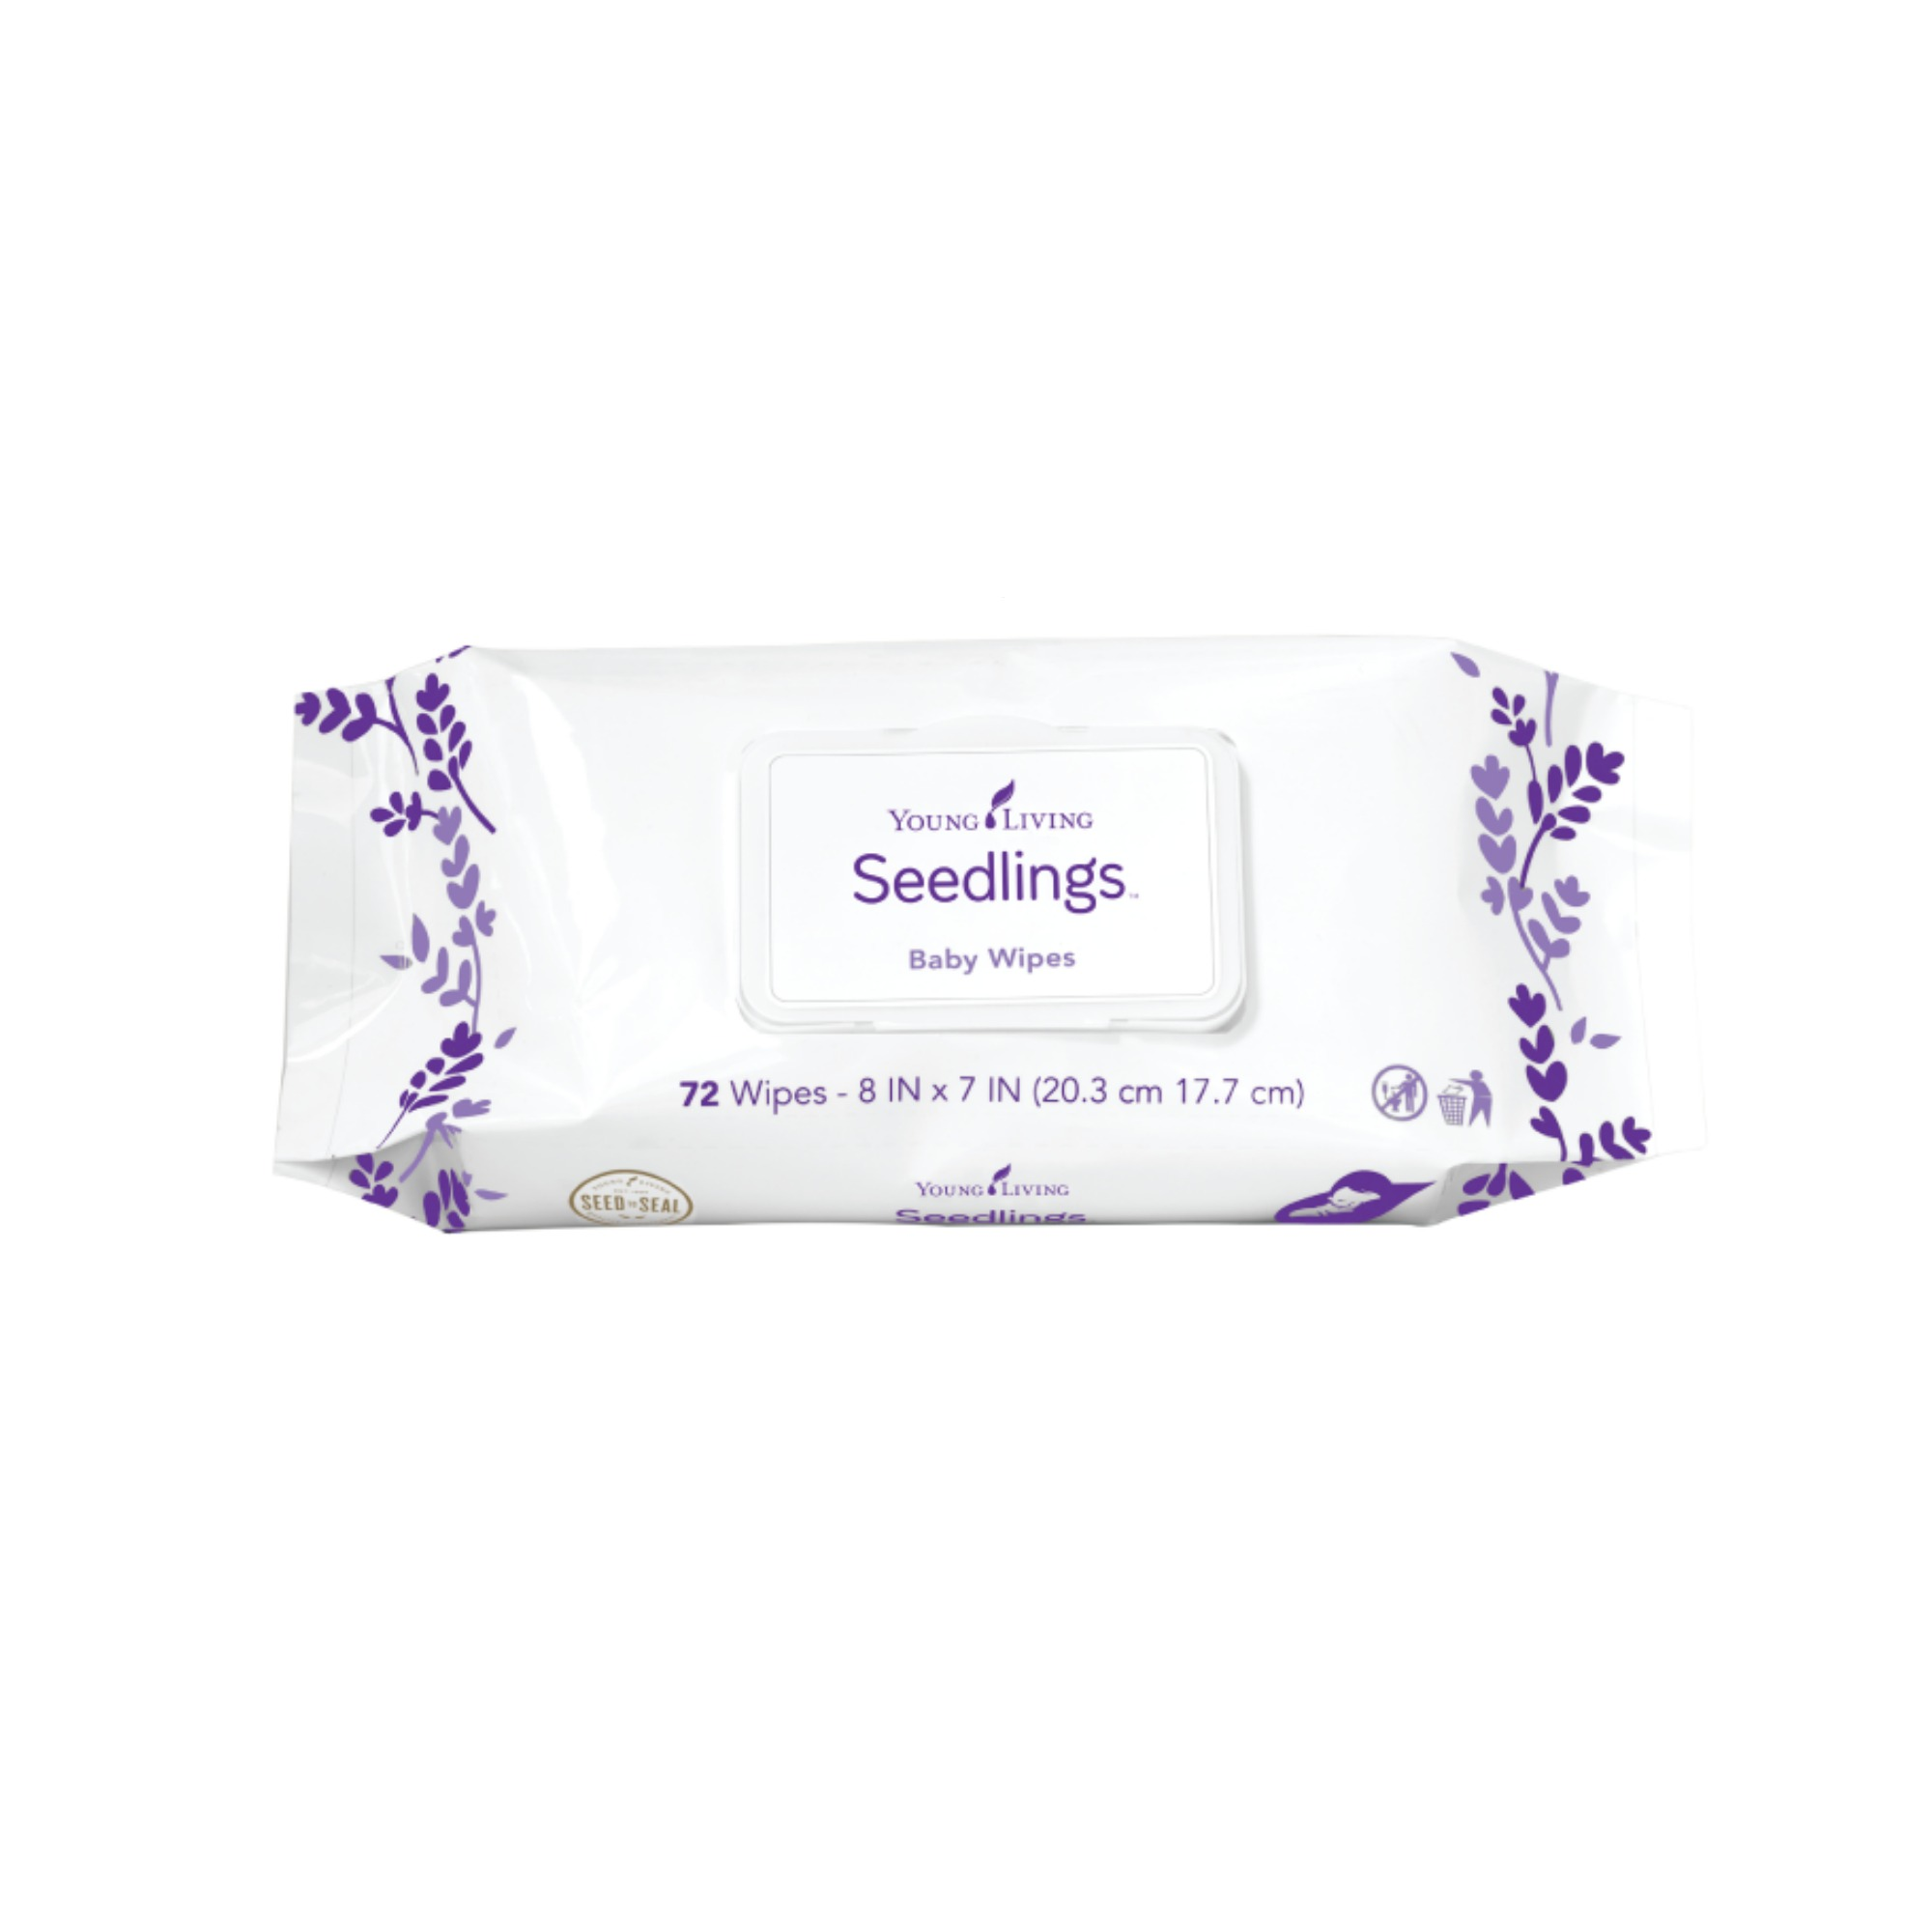 SEEDLINGS WIPES    Seedlings Baby Wipes are ultra-soft and comfortable. The soothing formula leaves skin moisturized, soft, and smooth, while providing gentle and thorough cleansing. Many like to use these as feminine wipes, or even as masculine wipes as well. Not flushable.   Click here     to learn more about this product.